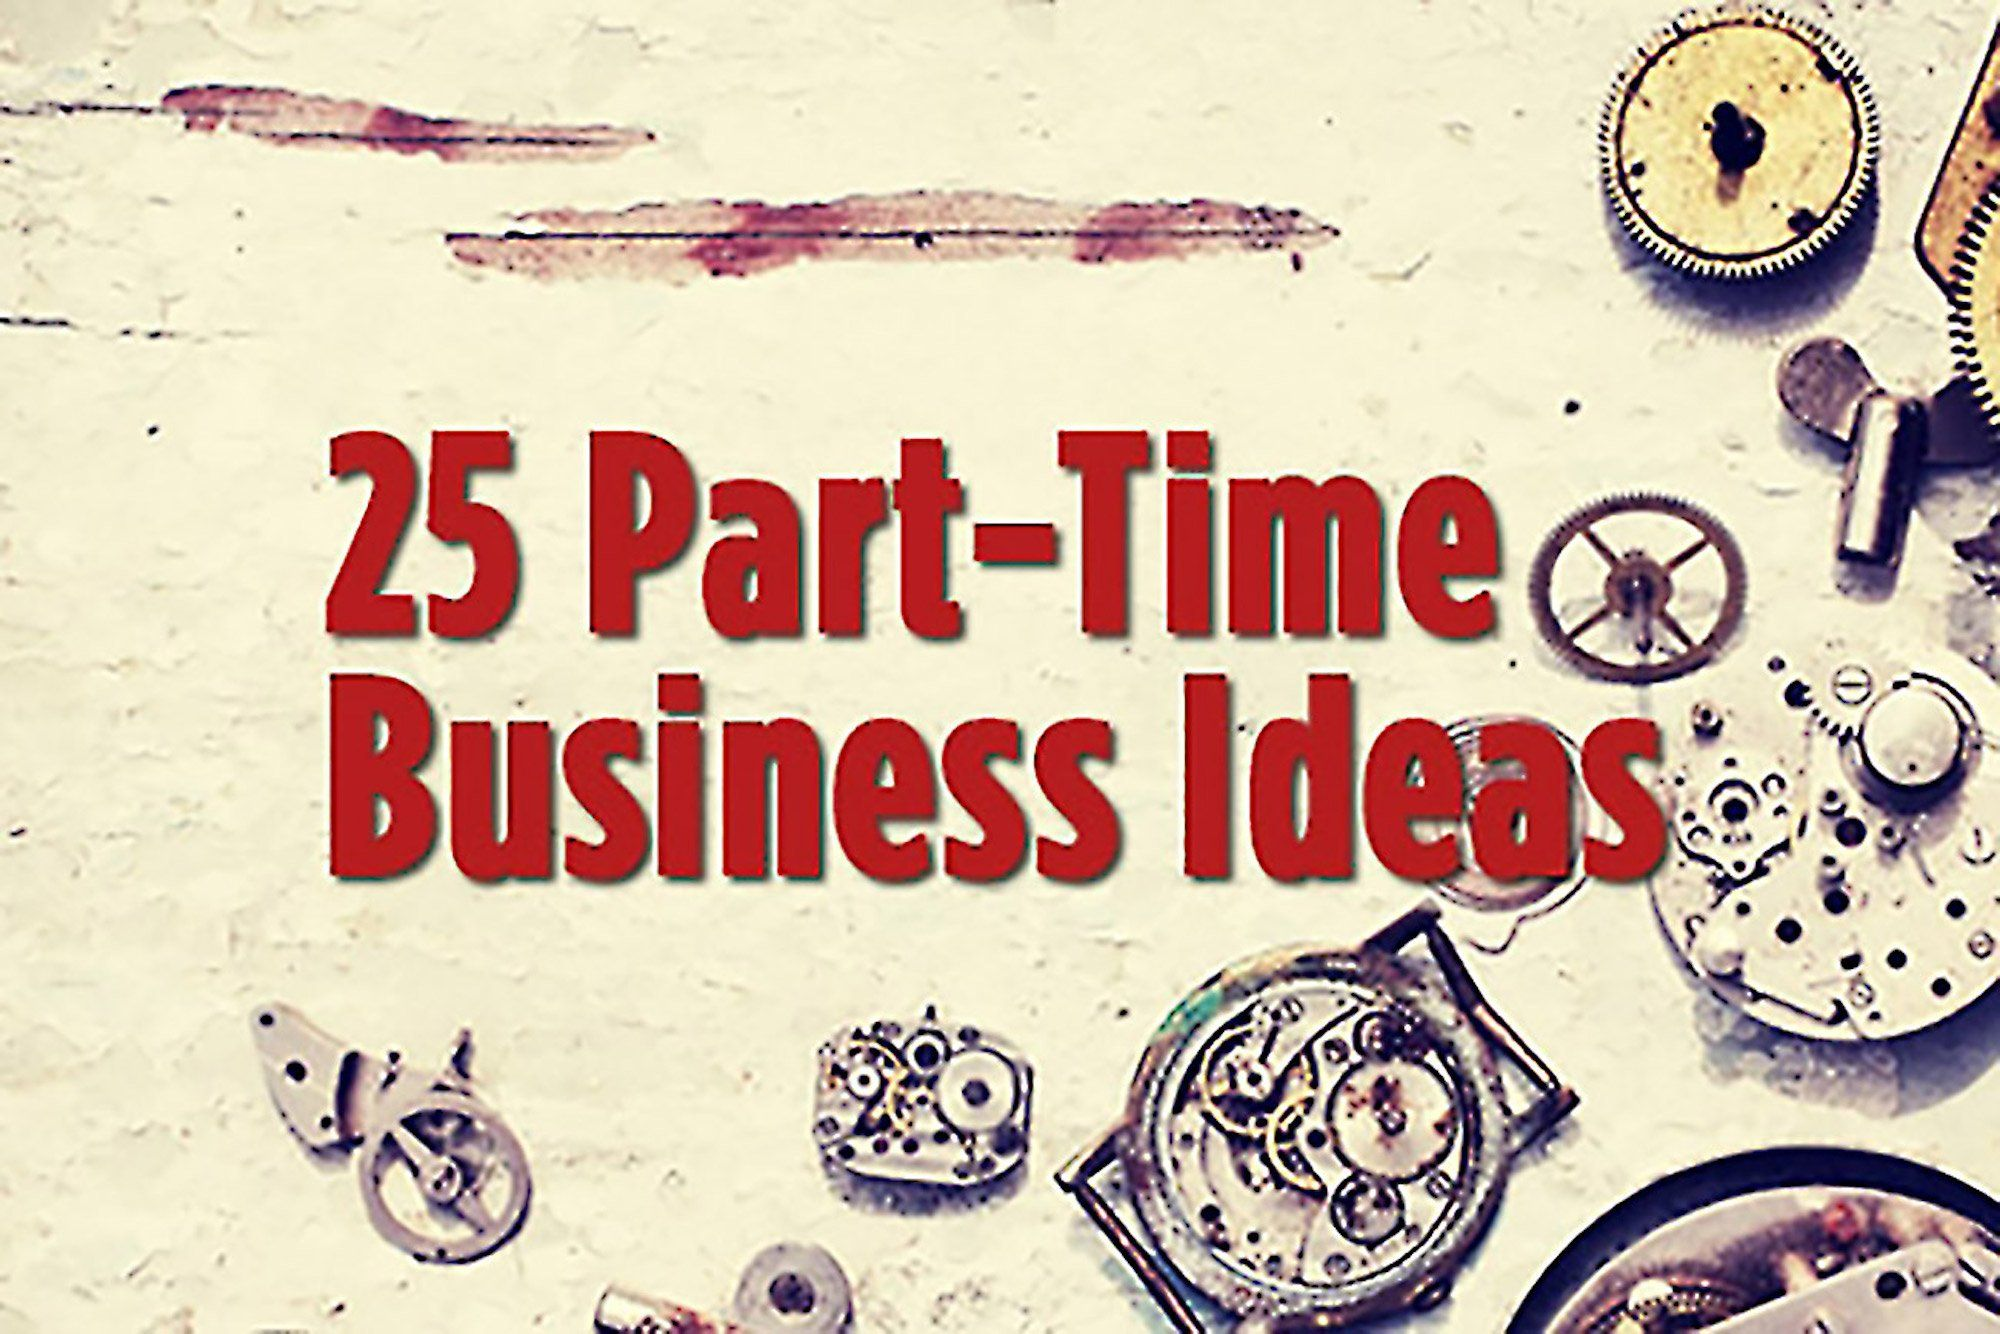 Doing Business As (DBA) Part time business ideas